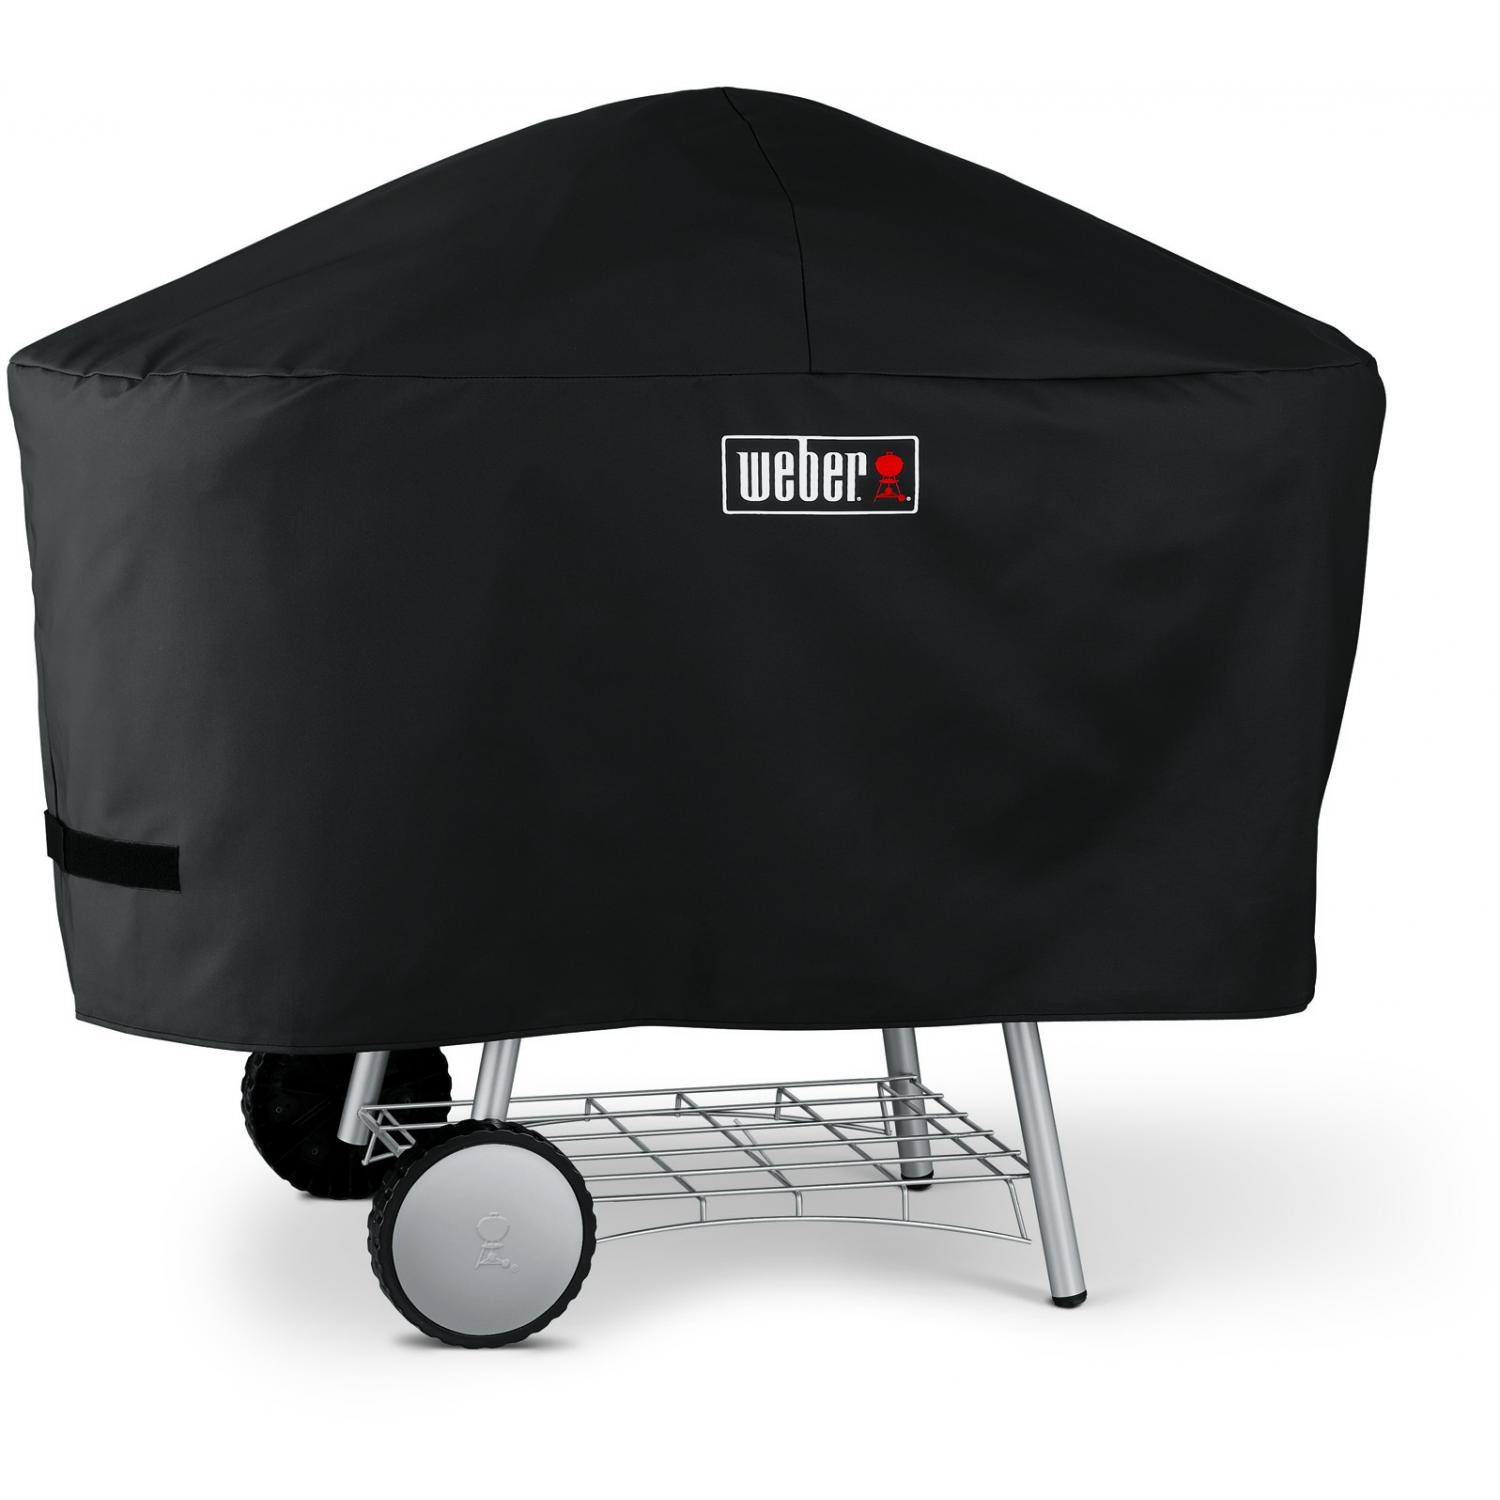 Weber 7457 Premium Cover For One Touch Platinum Charcoal Grills (2010 Model)